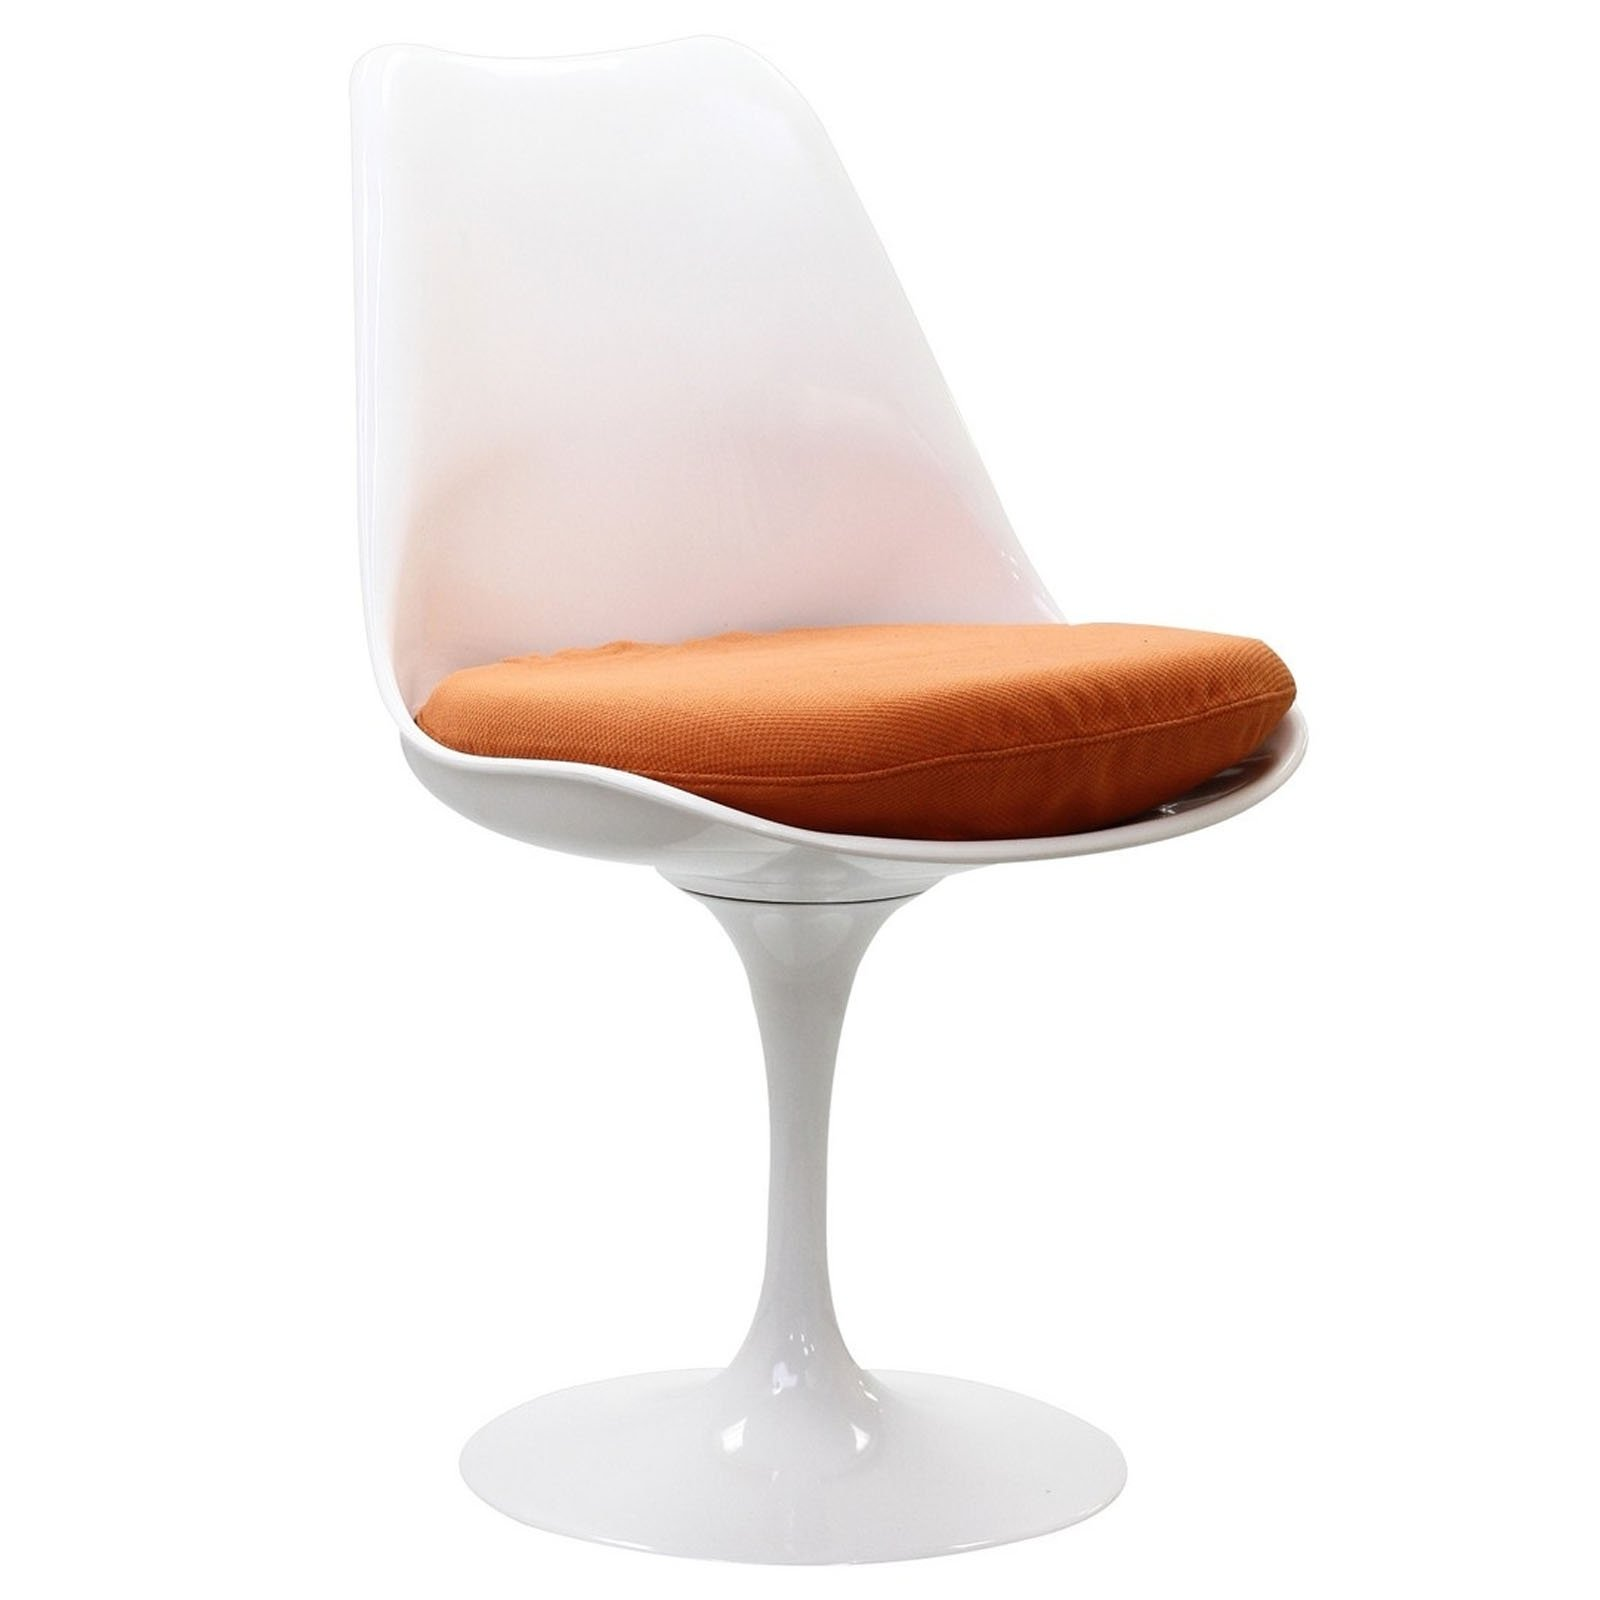 Lexmod eero saarinen style tulip side chair with orange cushion - Orange kitchen chair cushions ...